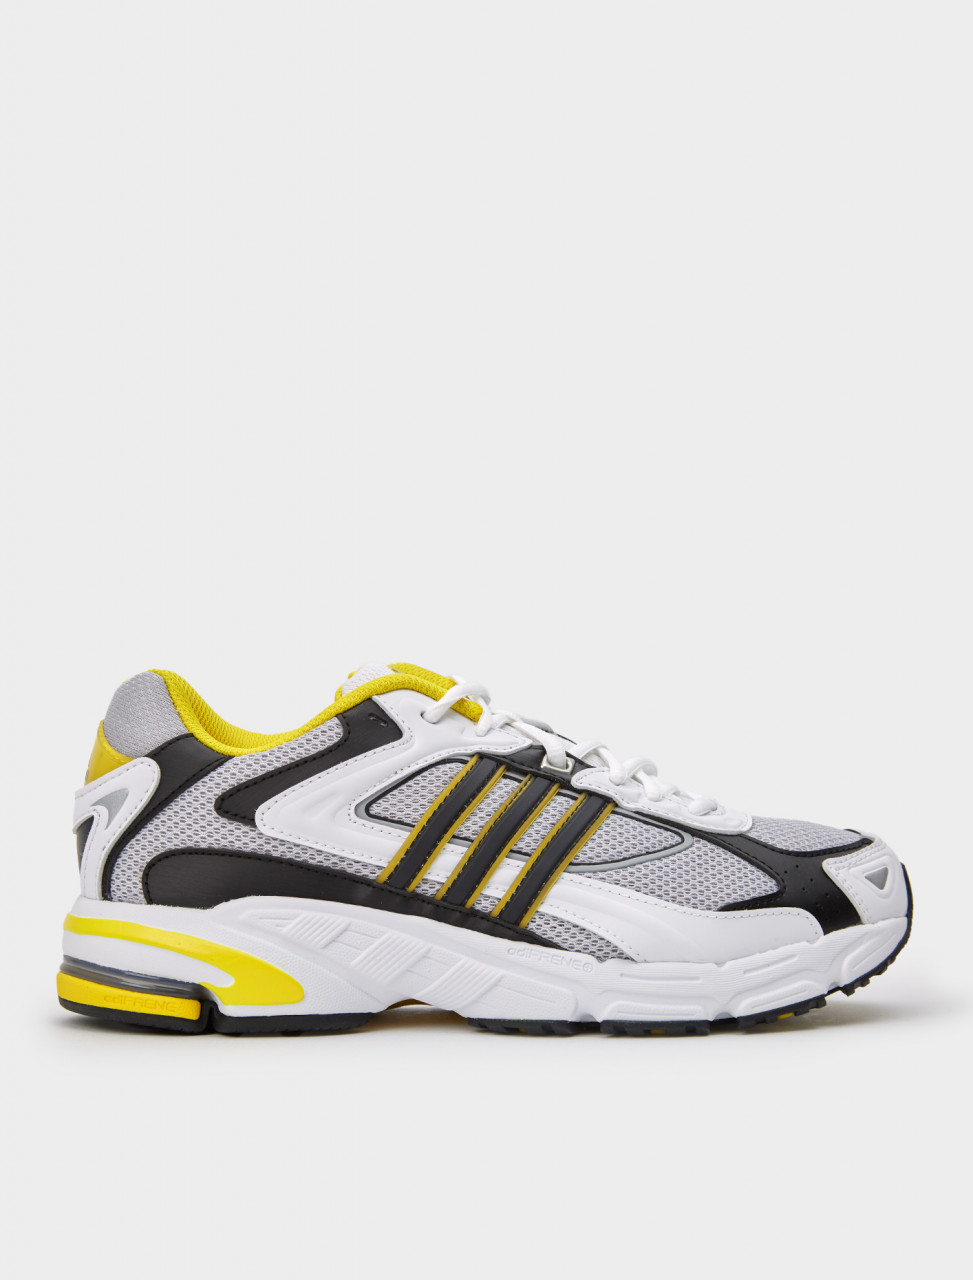 105-FX7718 ADIDAS RESPONSE CL WHITE YELLOW BLACK